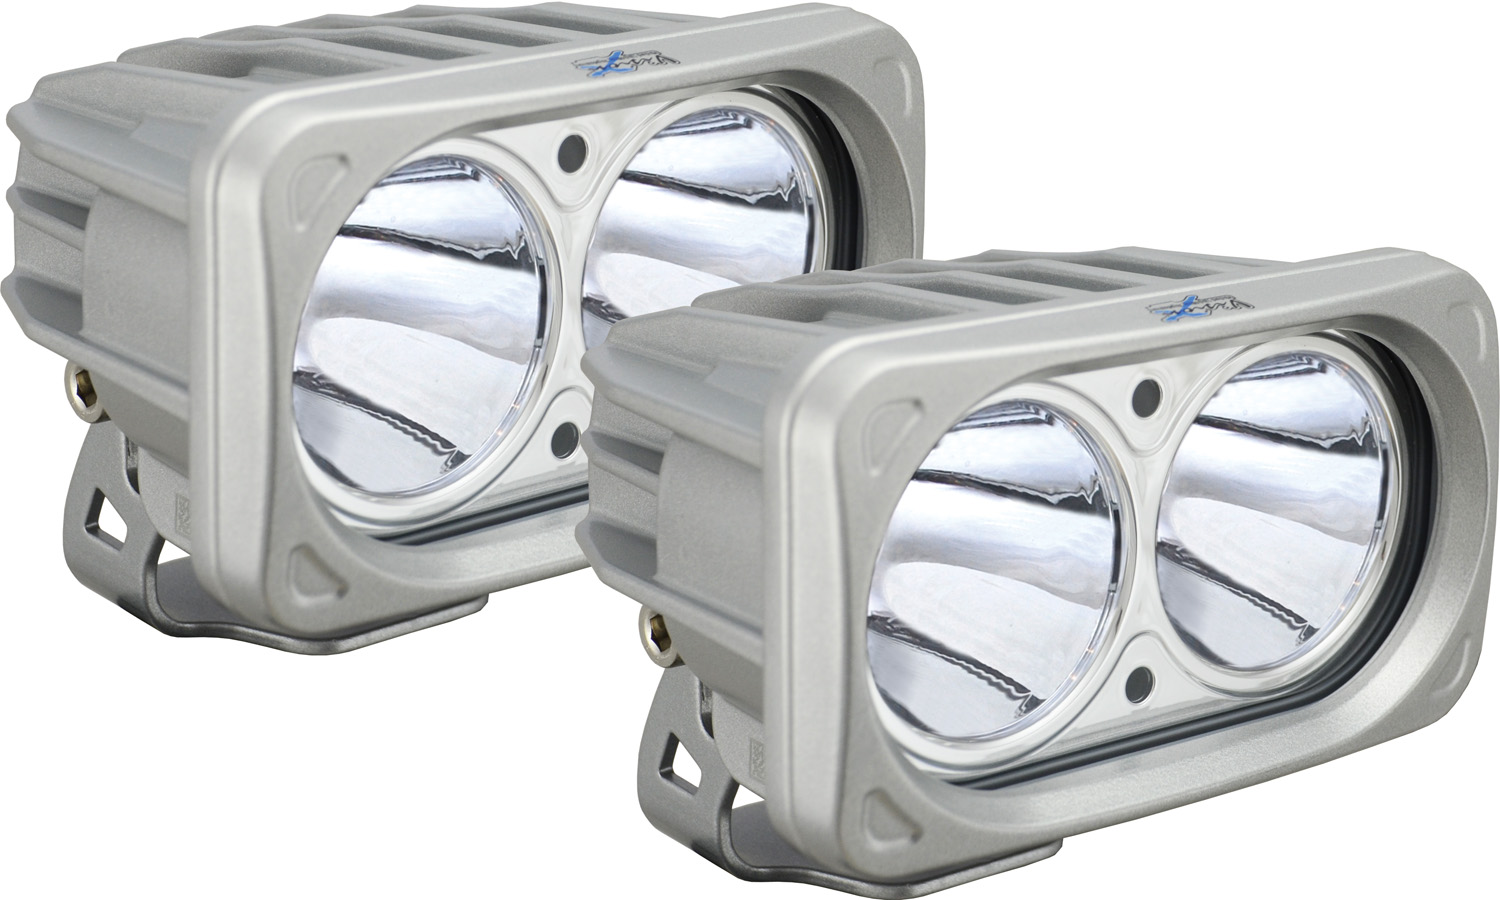 OPTIMUS SQUARE SILVER 2 10W LEDS 10° NARROW KIT OF 2 LIGHTS